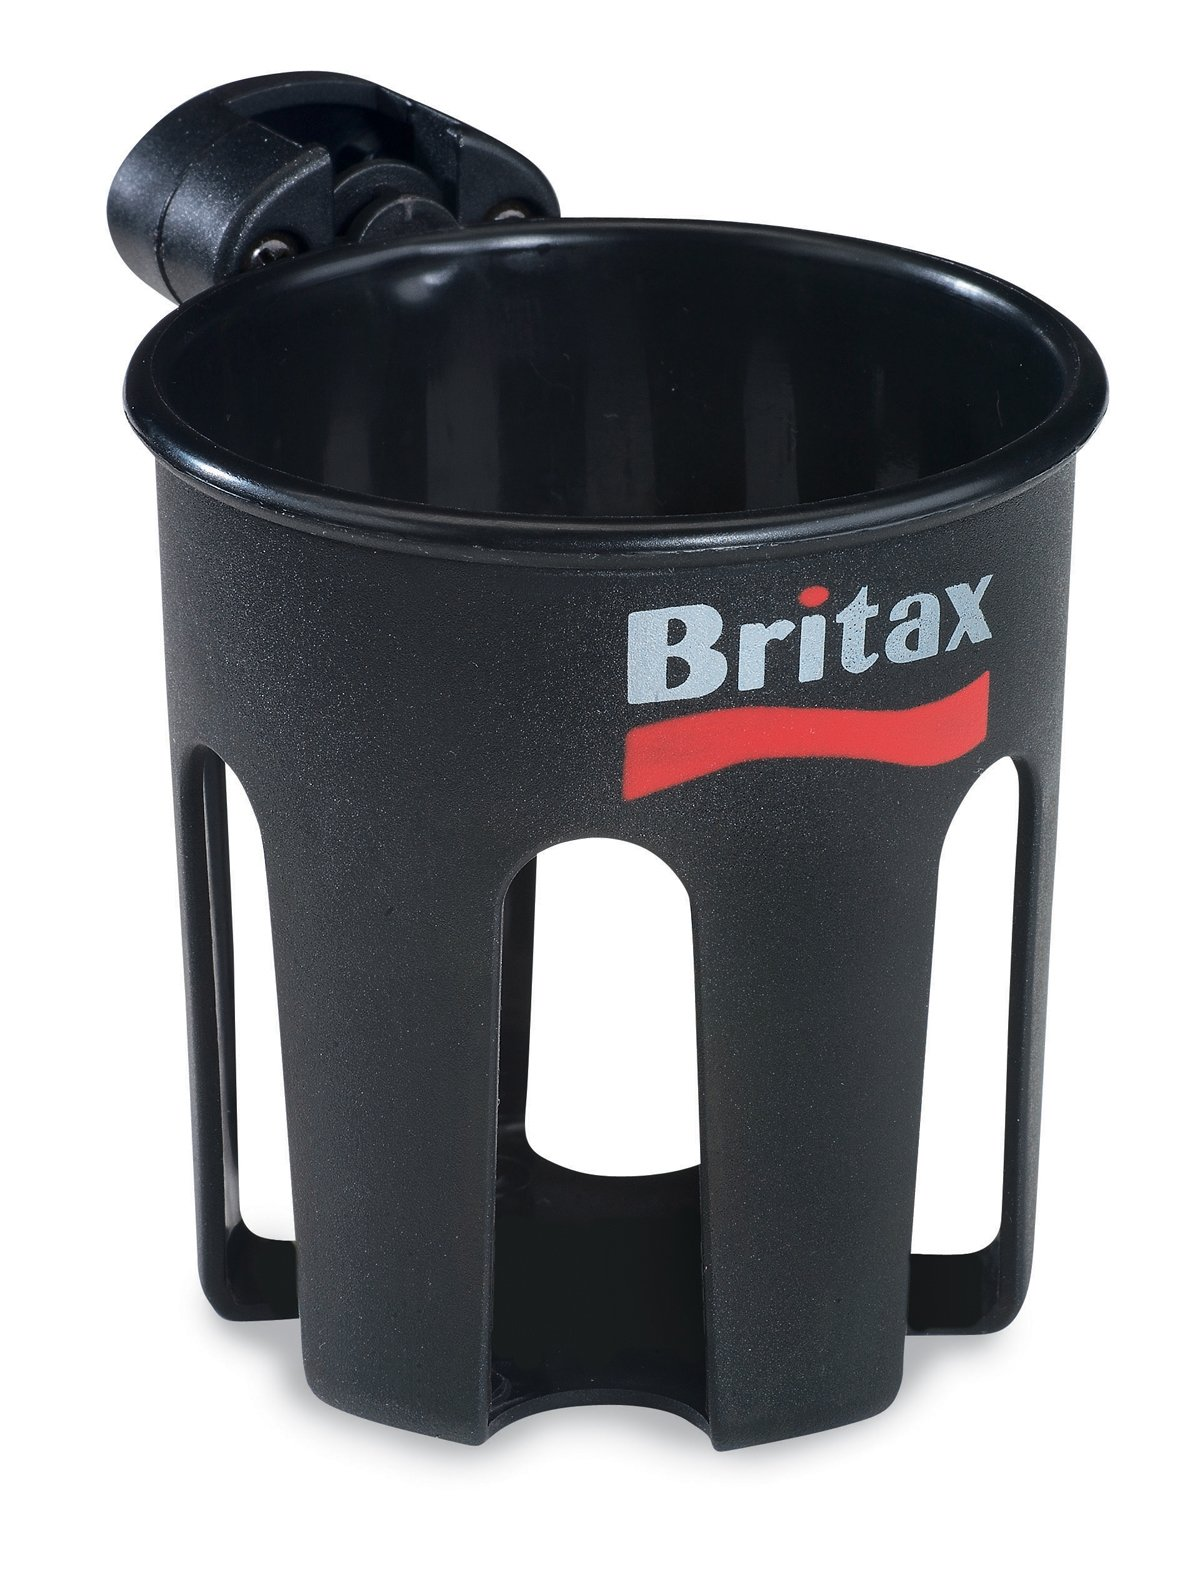 Adult Cup Holder for Britax Single and Double B-Agile Strollers by BRITAX